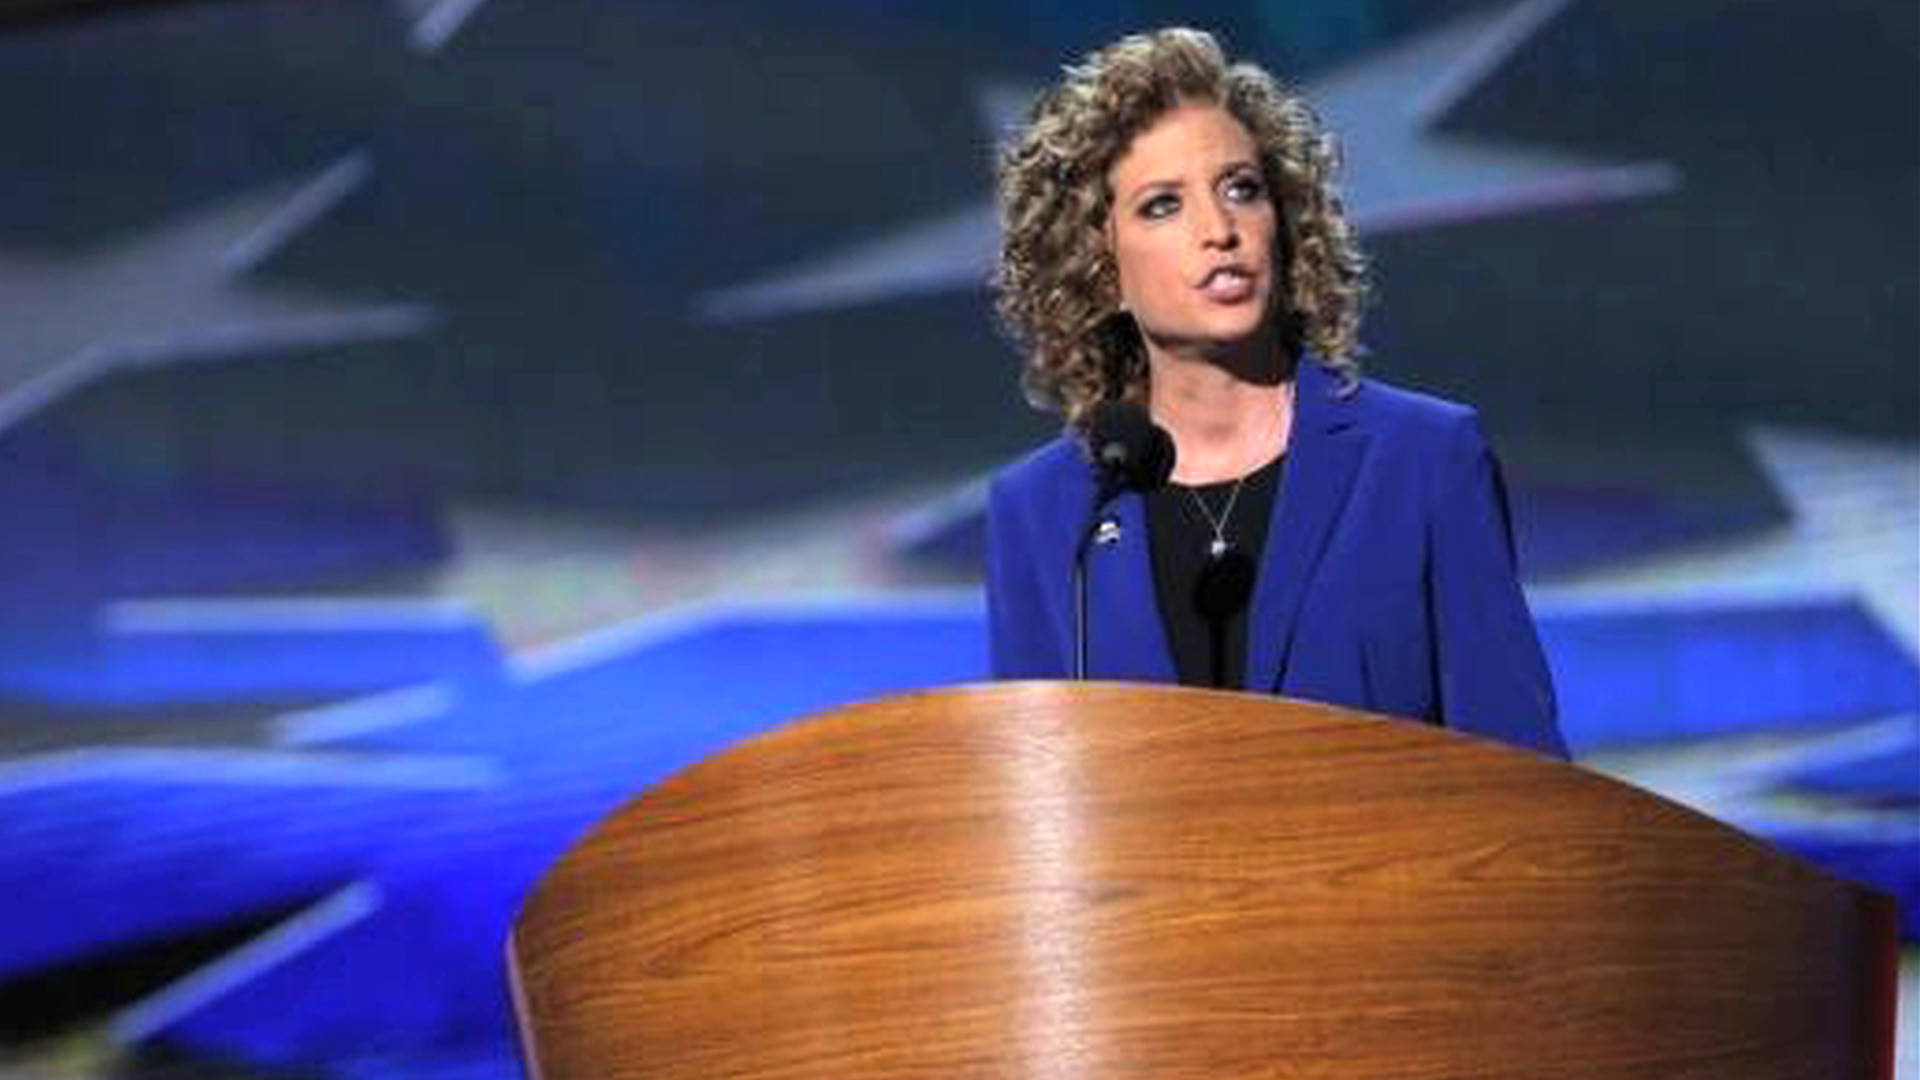 DNC Chair Wasserman Schultz Faces Criticism for Bias & Opening Up DNC to Lobbyists